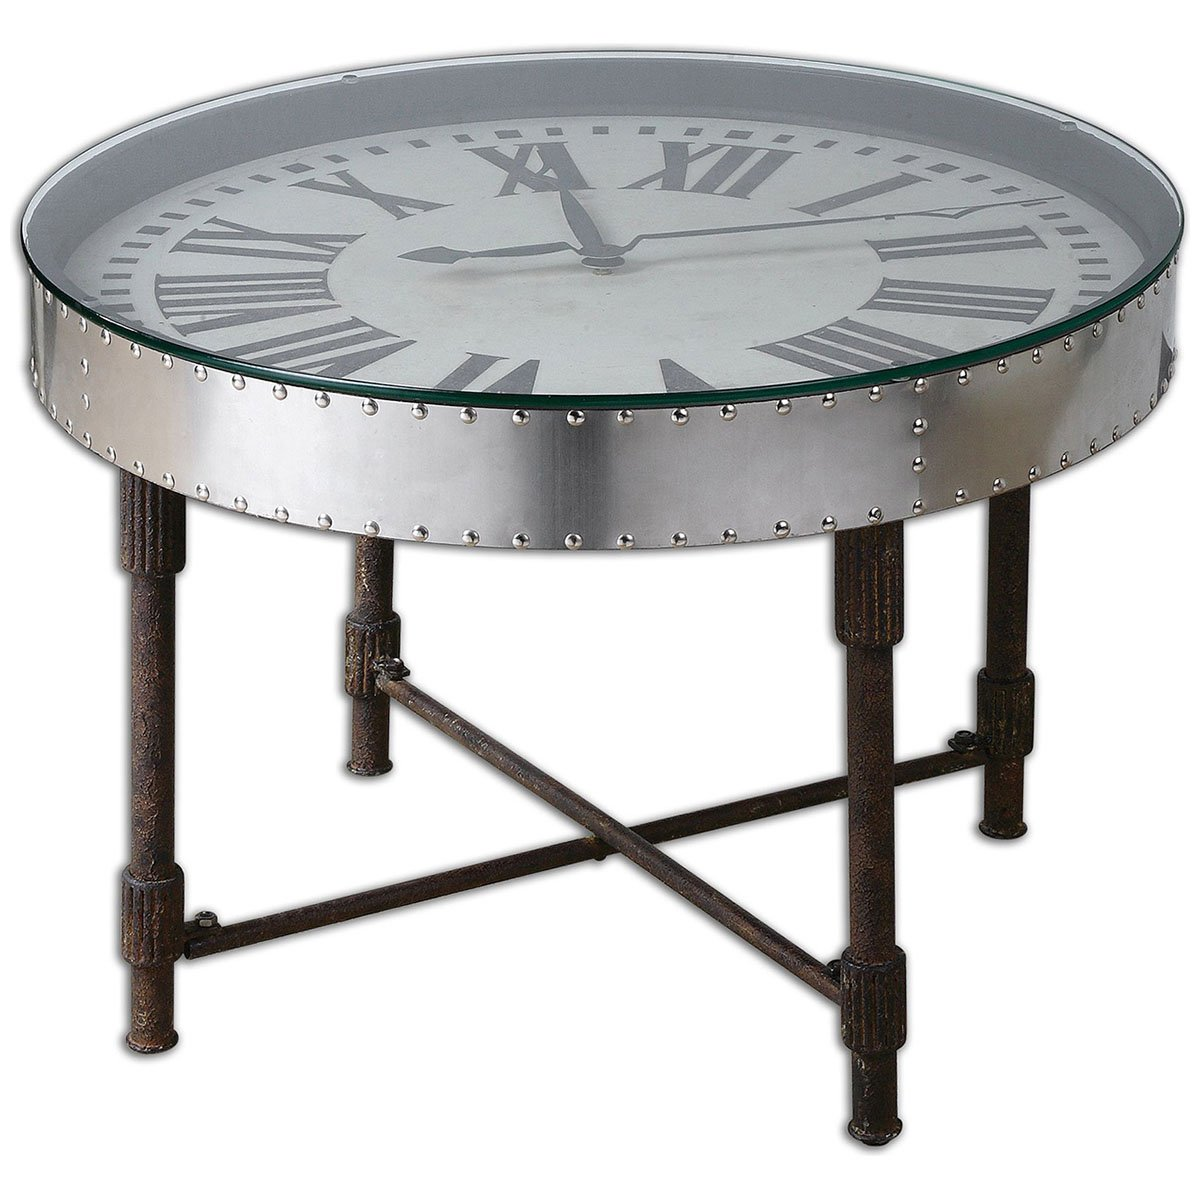 Amazon uttermost 24321 cassem clock table kitchen dining geotapseo Image collections